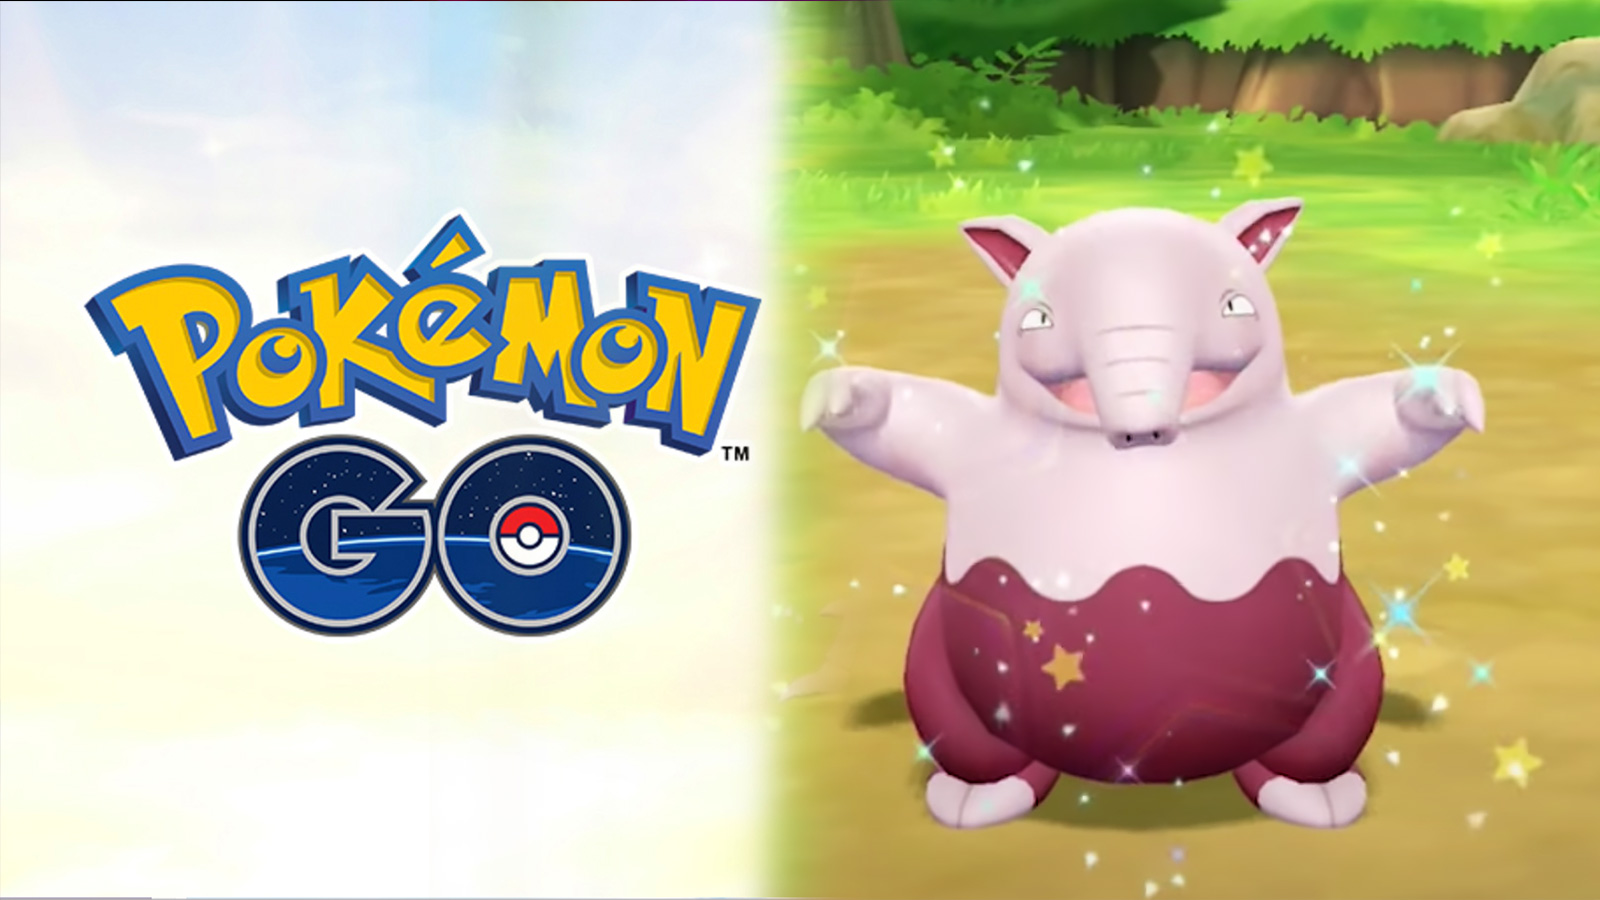 Screenshot of Pokemon Go logo next to Shiny Drowzee in Pokemon Let's Go Pikachu.